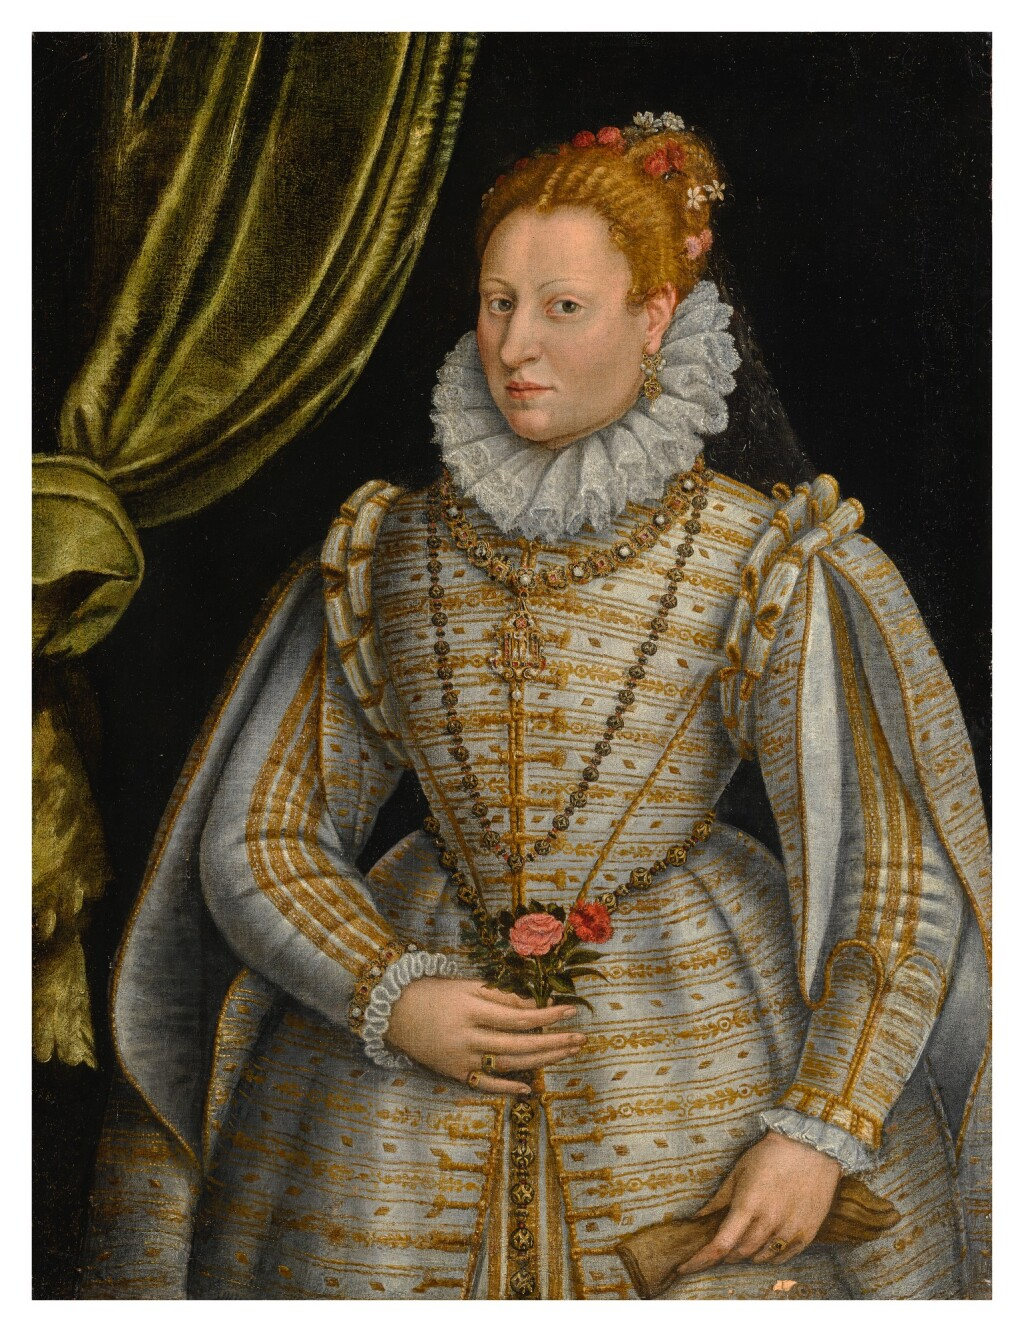 LAVINIA FONTANA     PORTRAIT OF A LADY, THREE-QUARTER LENGTH, DRESSED IN A WHITE AND GOLD EMBROIDERED GOWN, HOLDING A GLOVE IN ONE HAND AND A ROSE AND A PINK IN THE OTHER